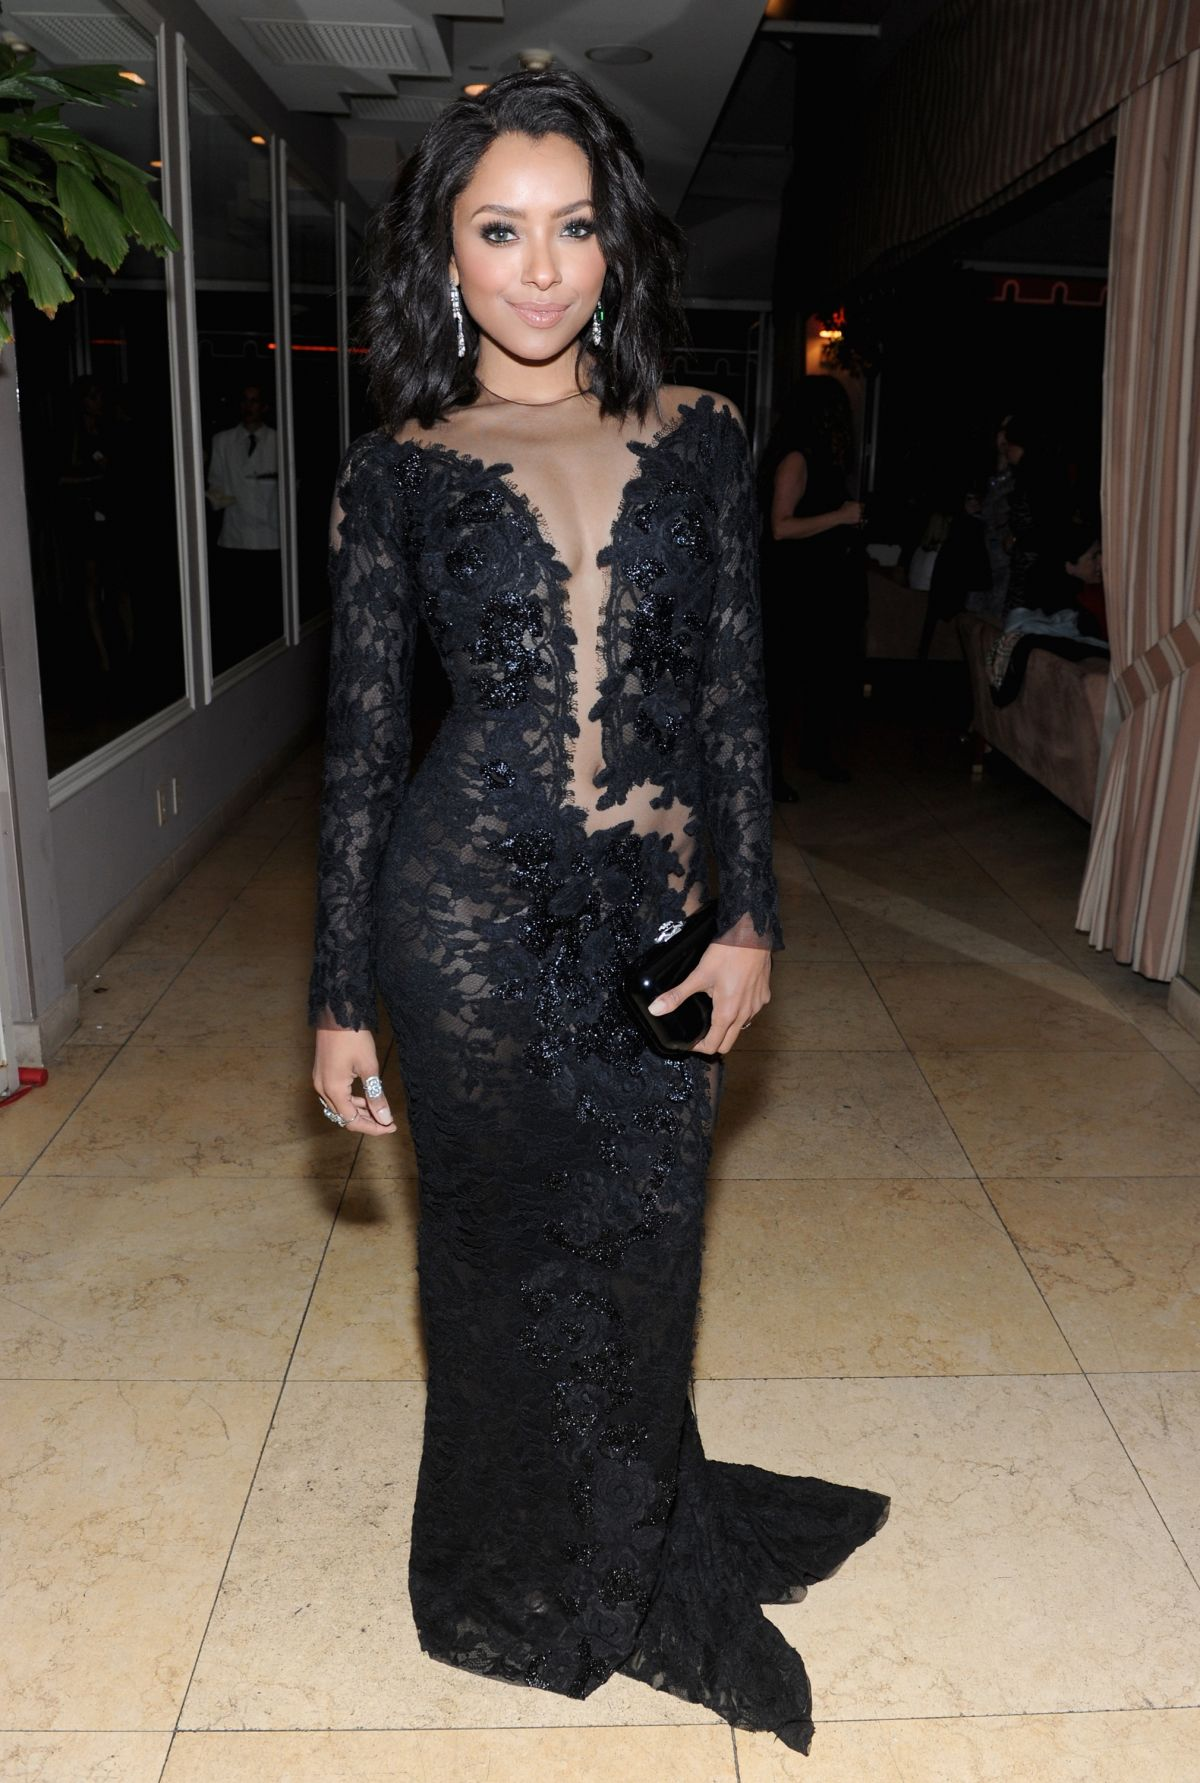 KAT GRAHAM at Grey Goose Pre-oscar Party in West Hollywood